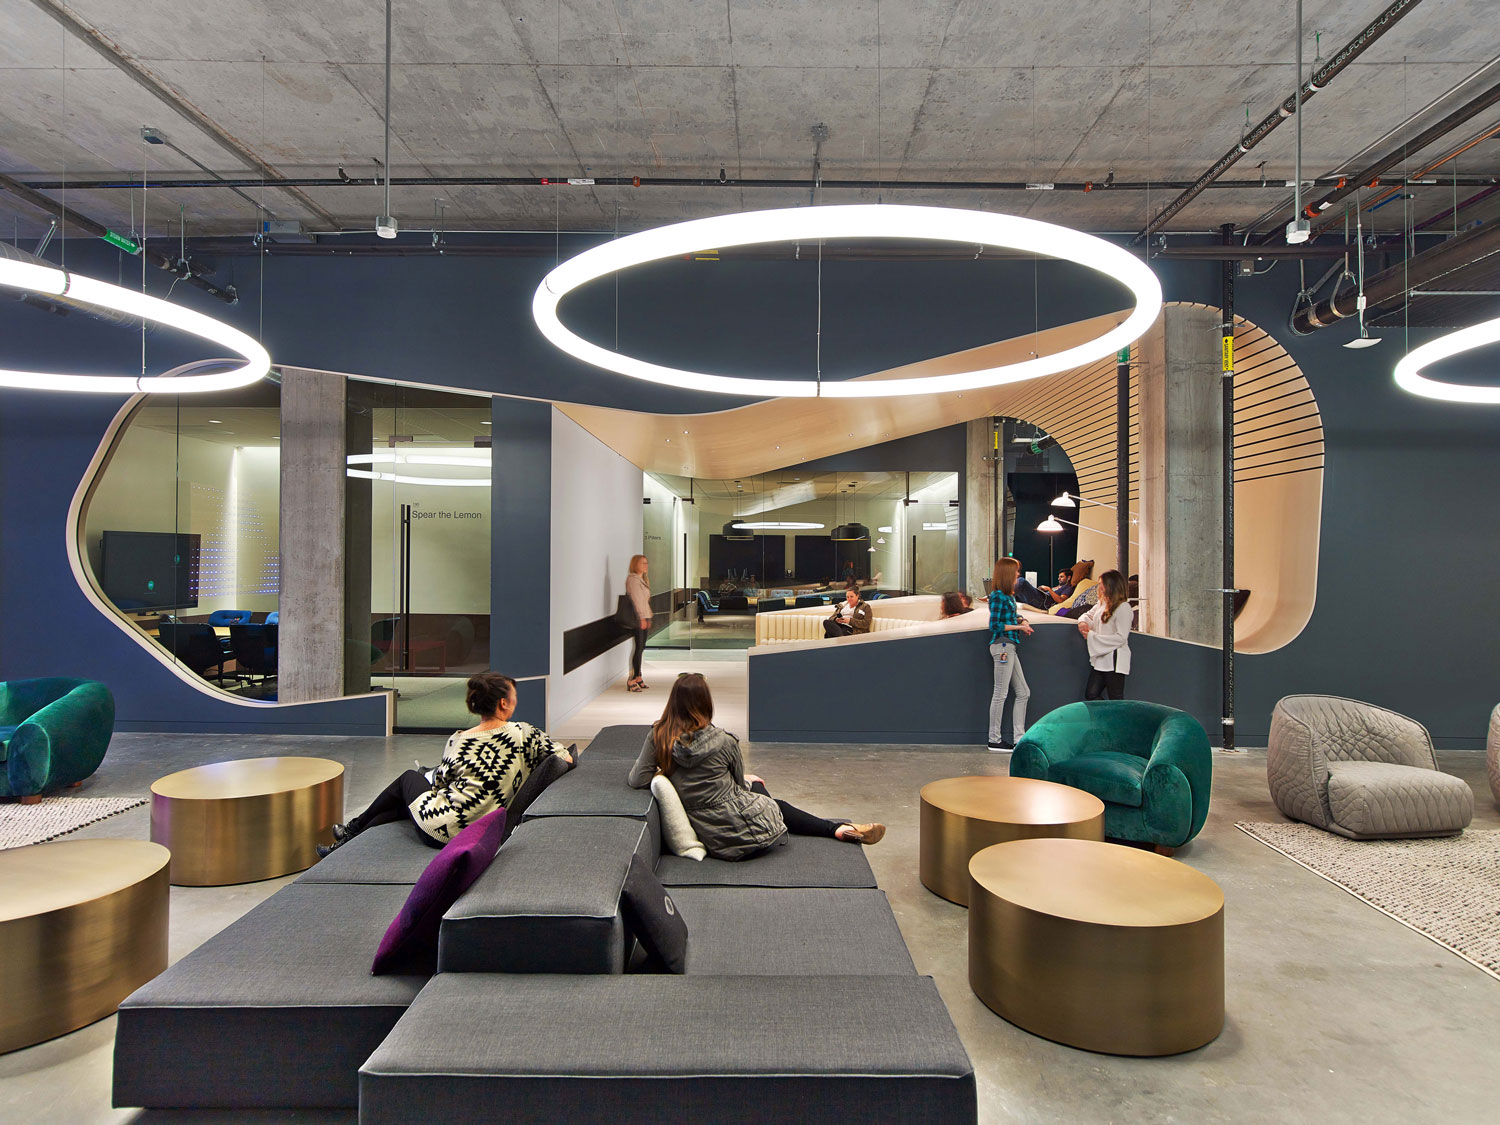 Dropbox offices in san francisco by rapt studio yellowtrace for Design house inc